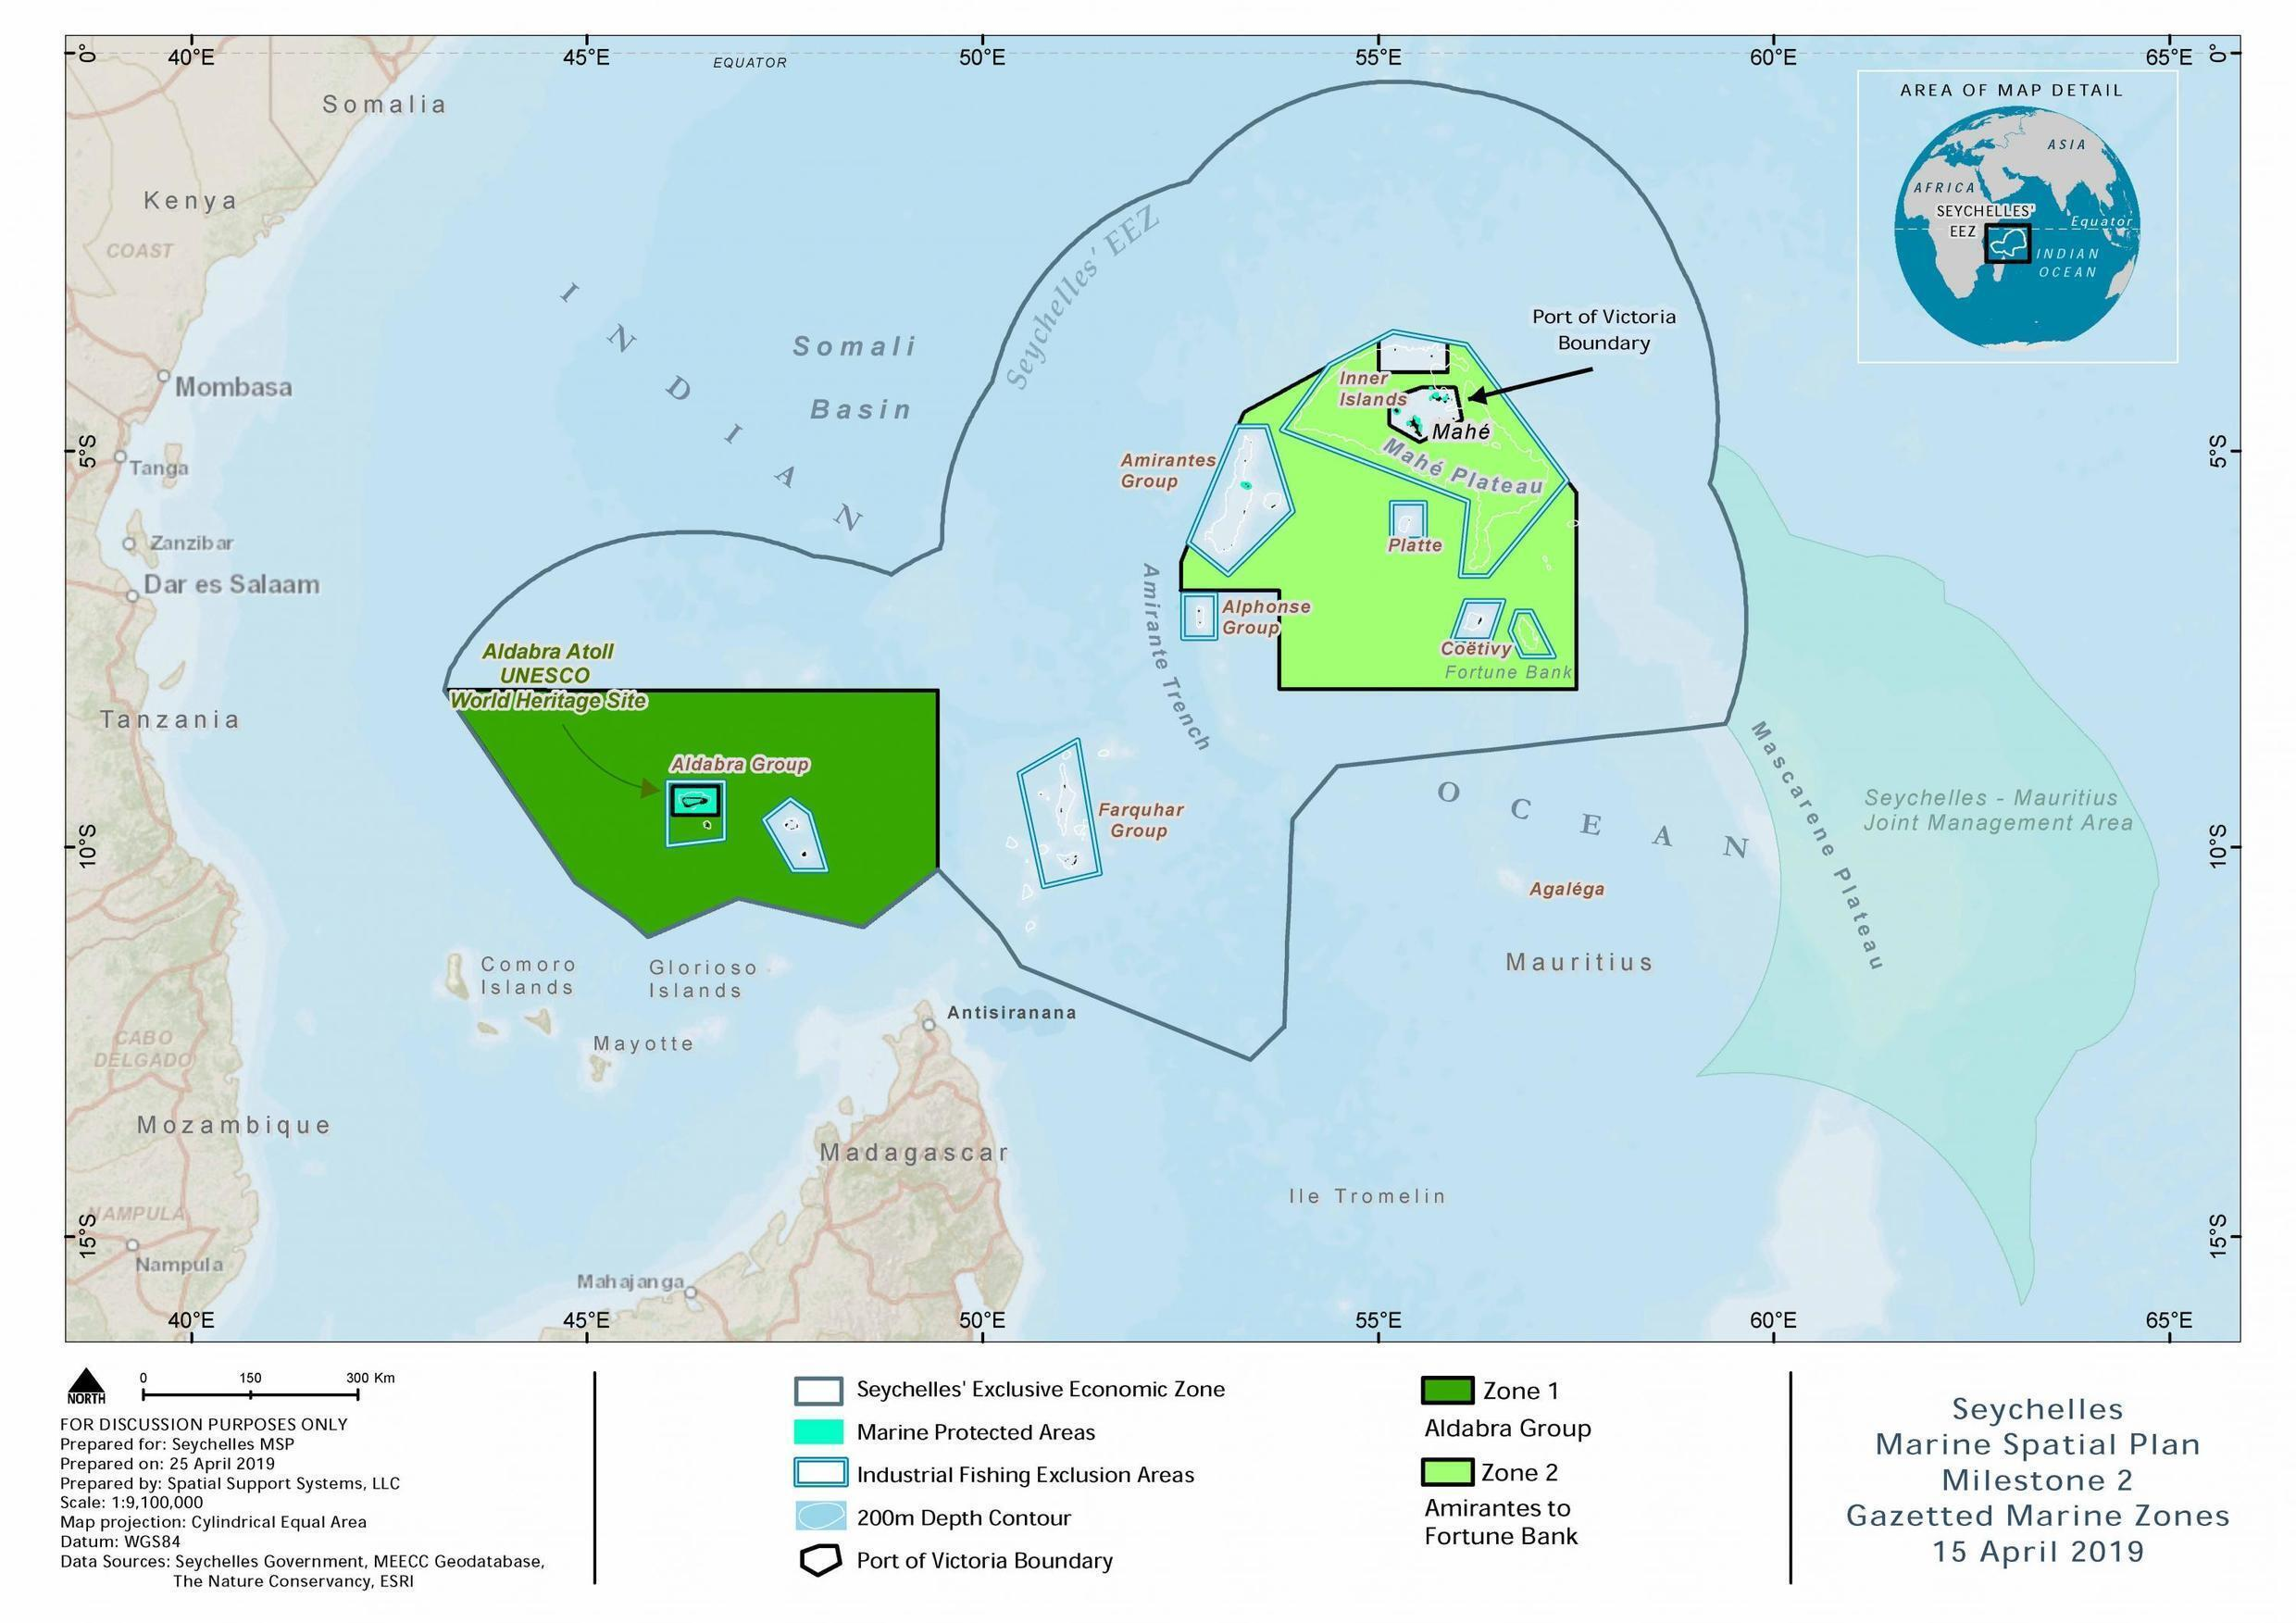 Seychelles archipelago map outlining its borders and marine protected areas.